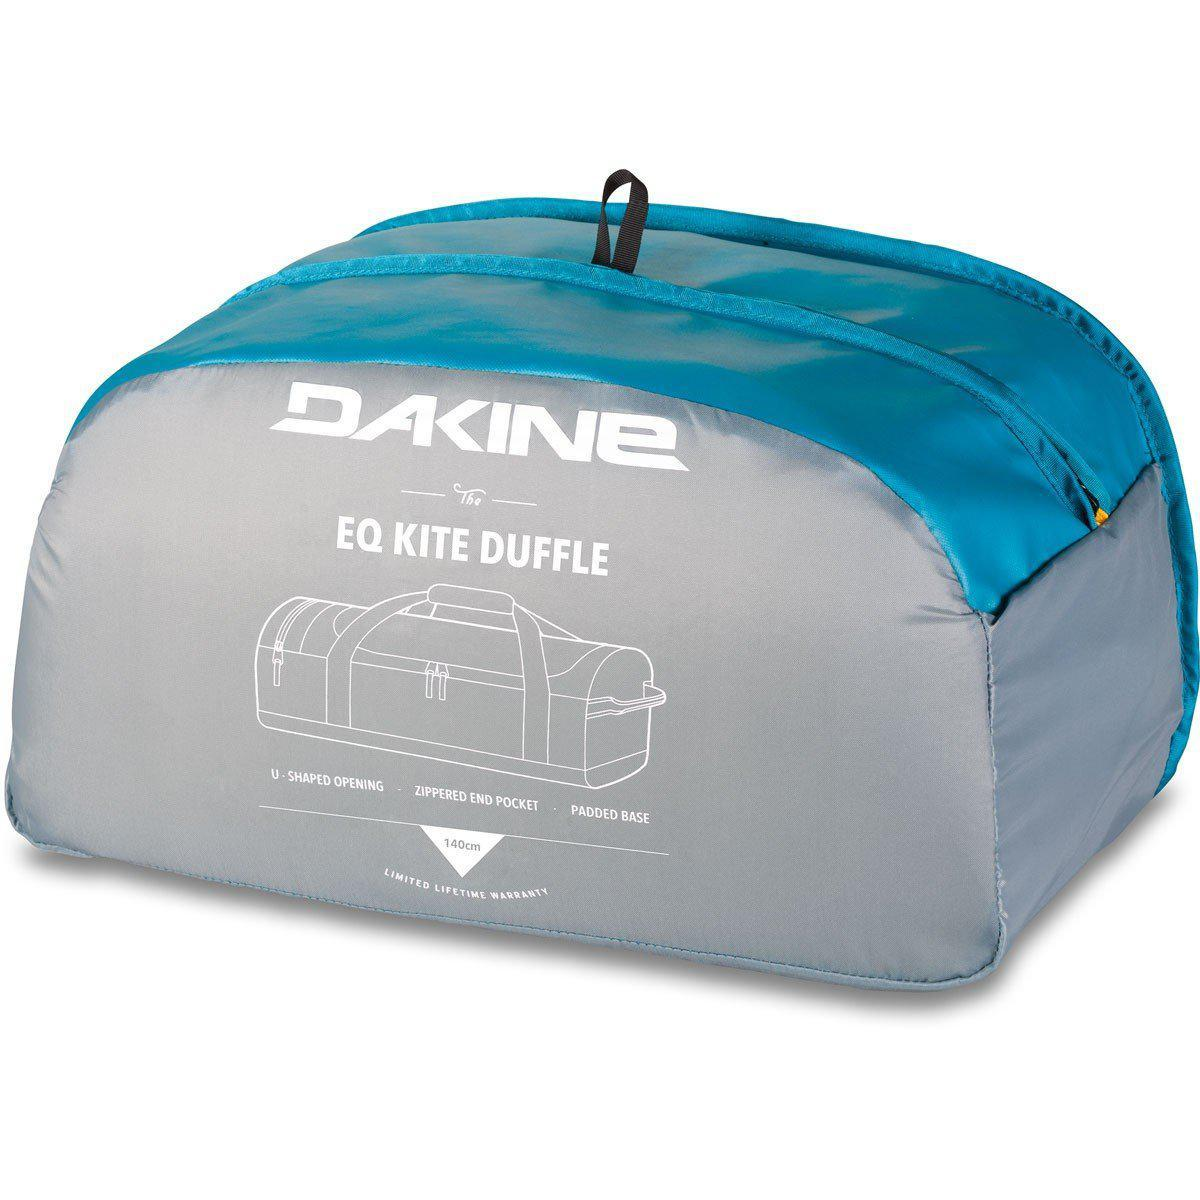 Dakine EQ Kite Duffle 140 BAG-Big Winds